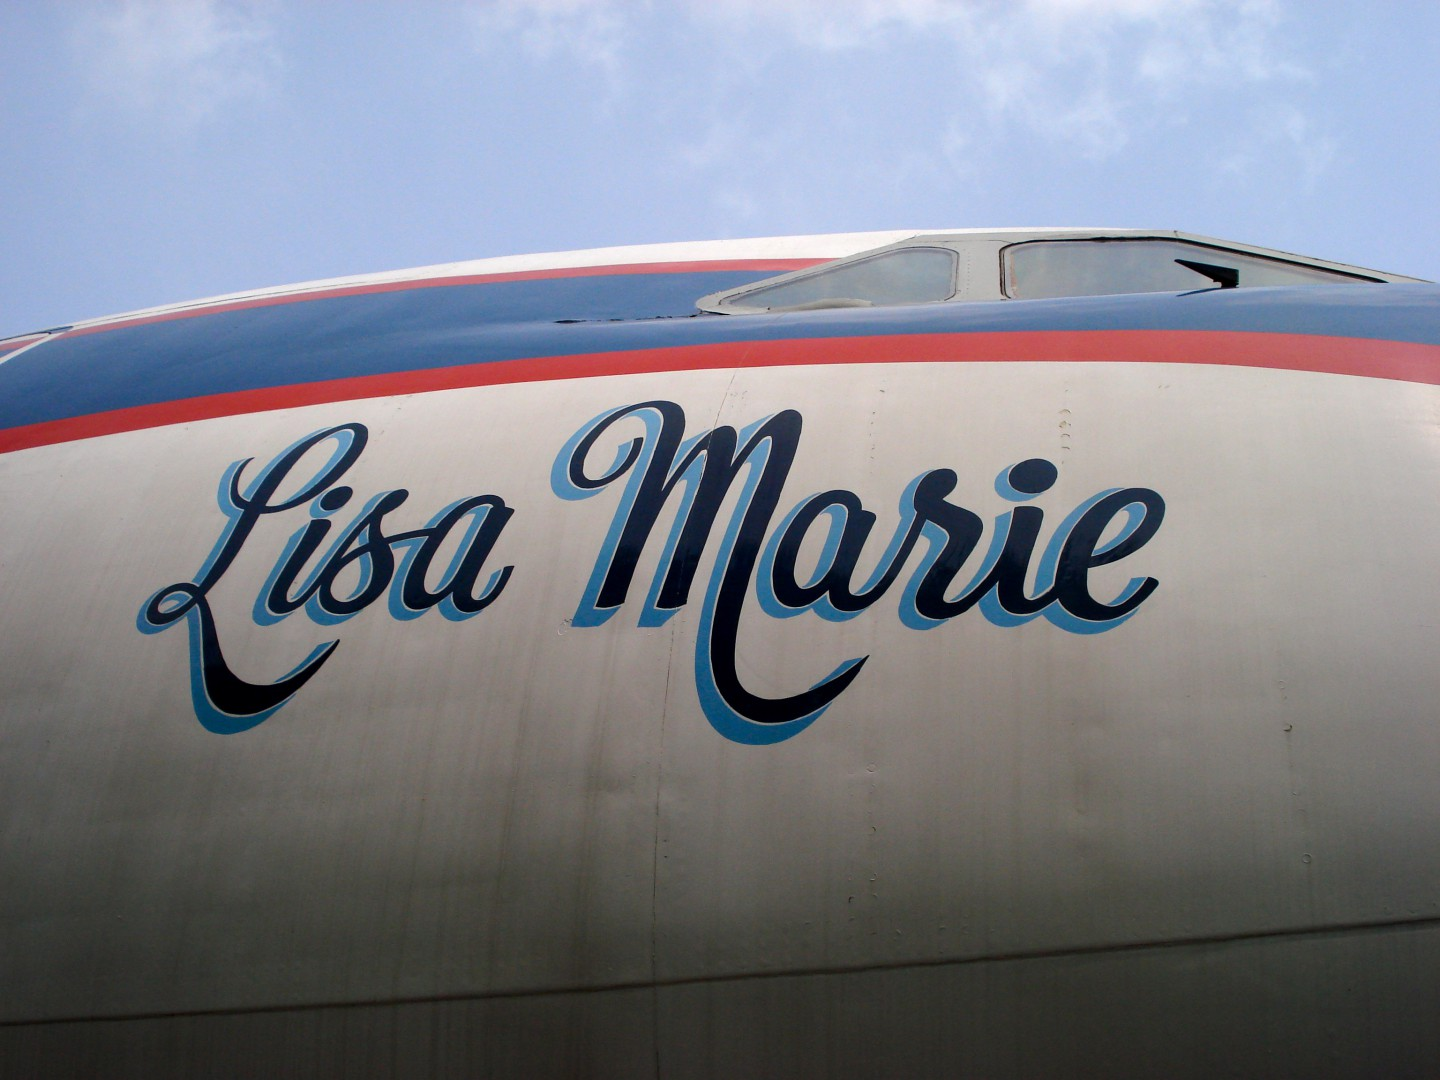 Lisa Marie Elvis' airplane